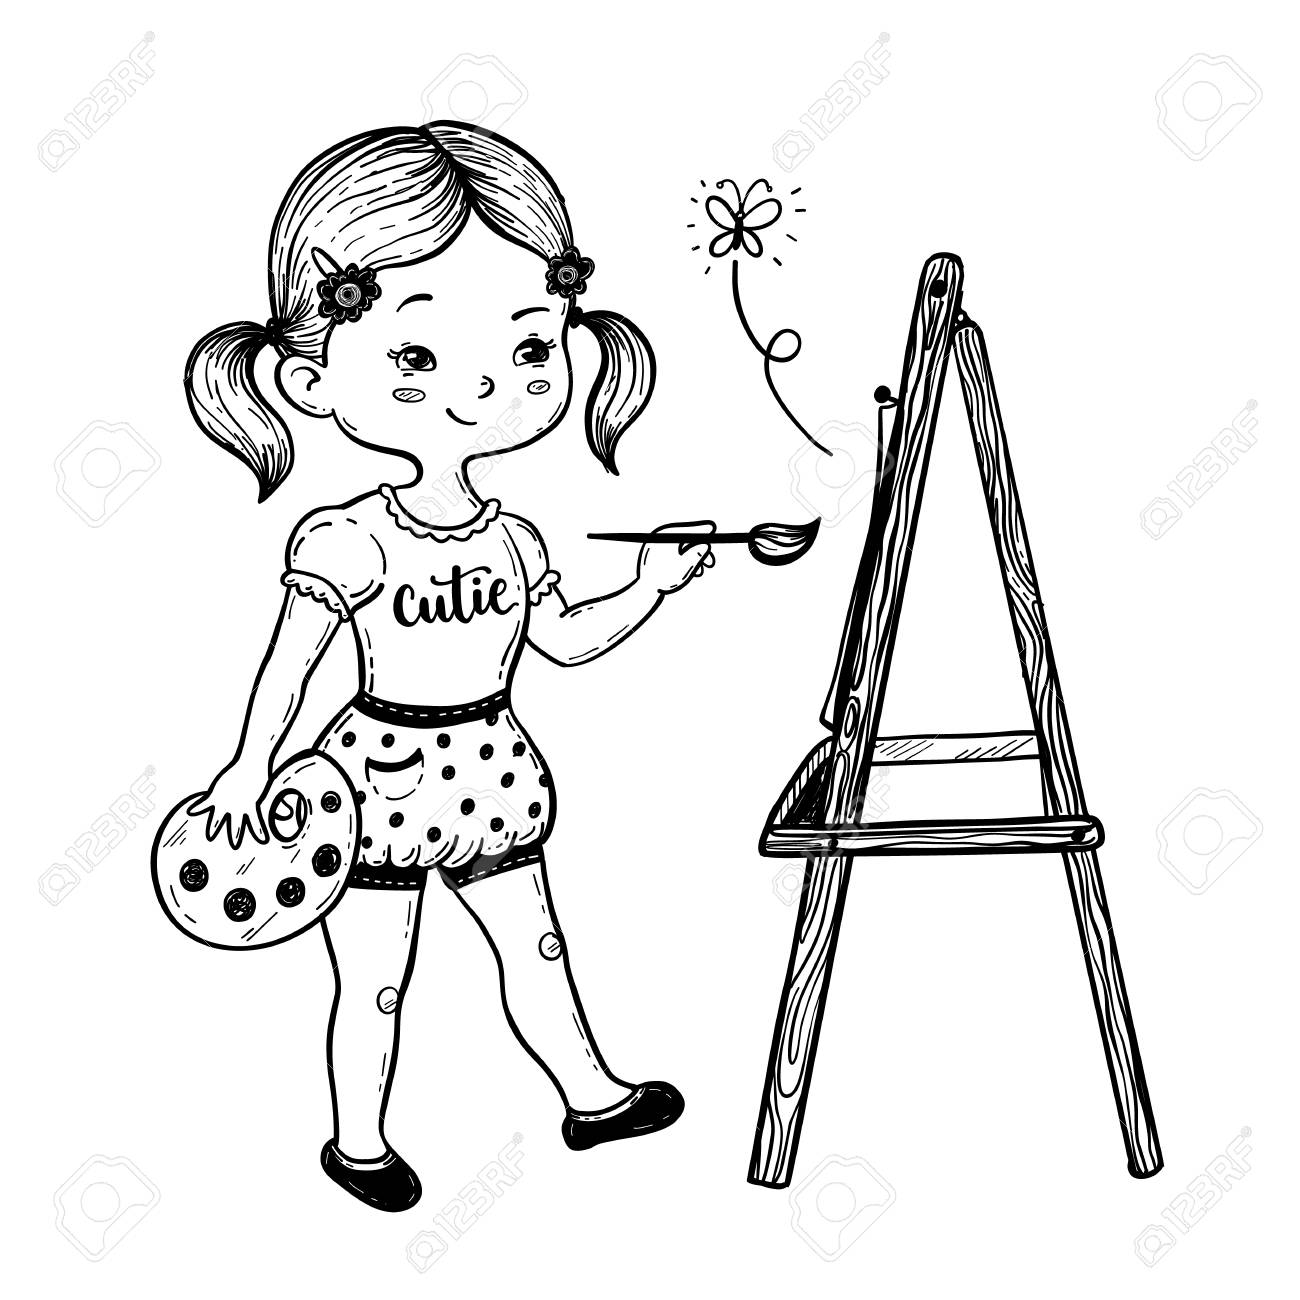 1300x1300 Vector Illustration Of A Cute Little Girl Drawing Behind An Easel